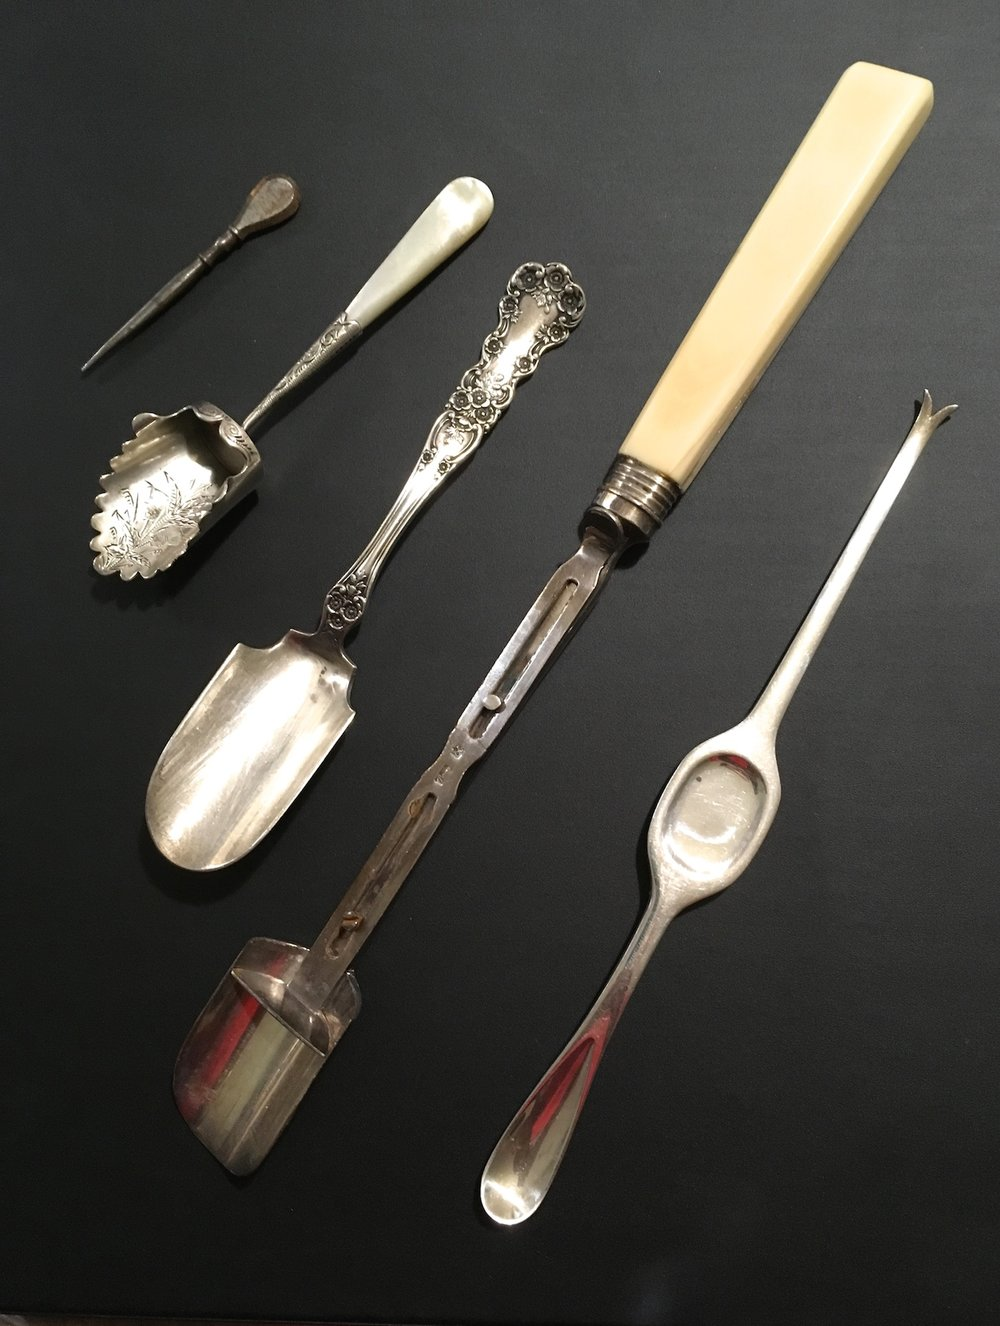 Scoops - the one on the left does not belong in the dining room